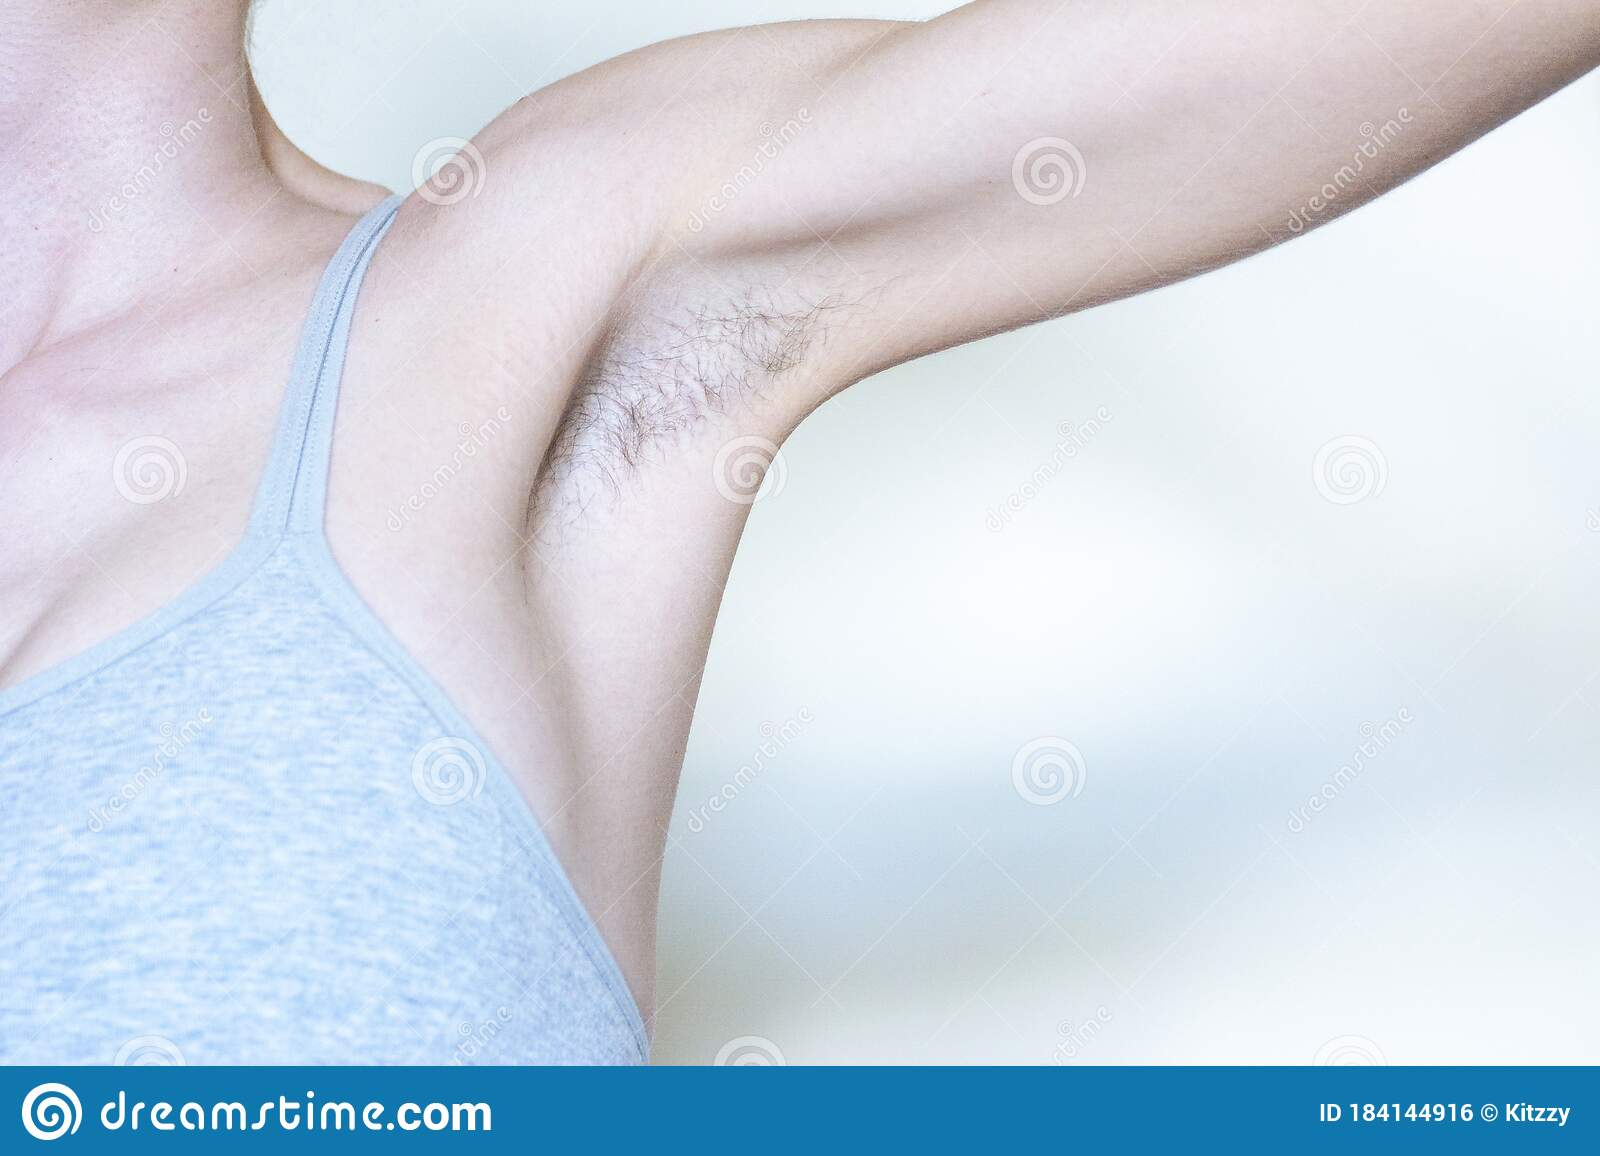 Pit hairy pictures arm Hairy Armpits